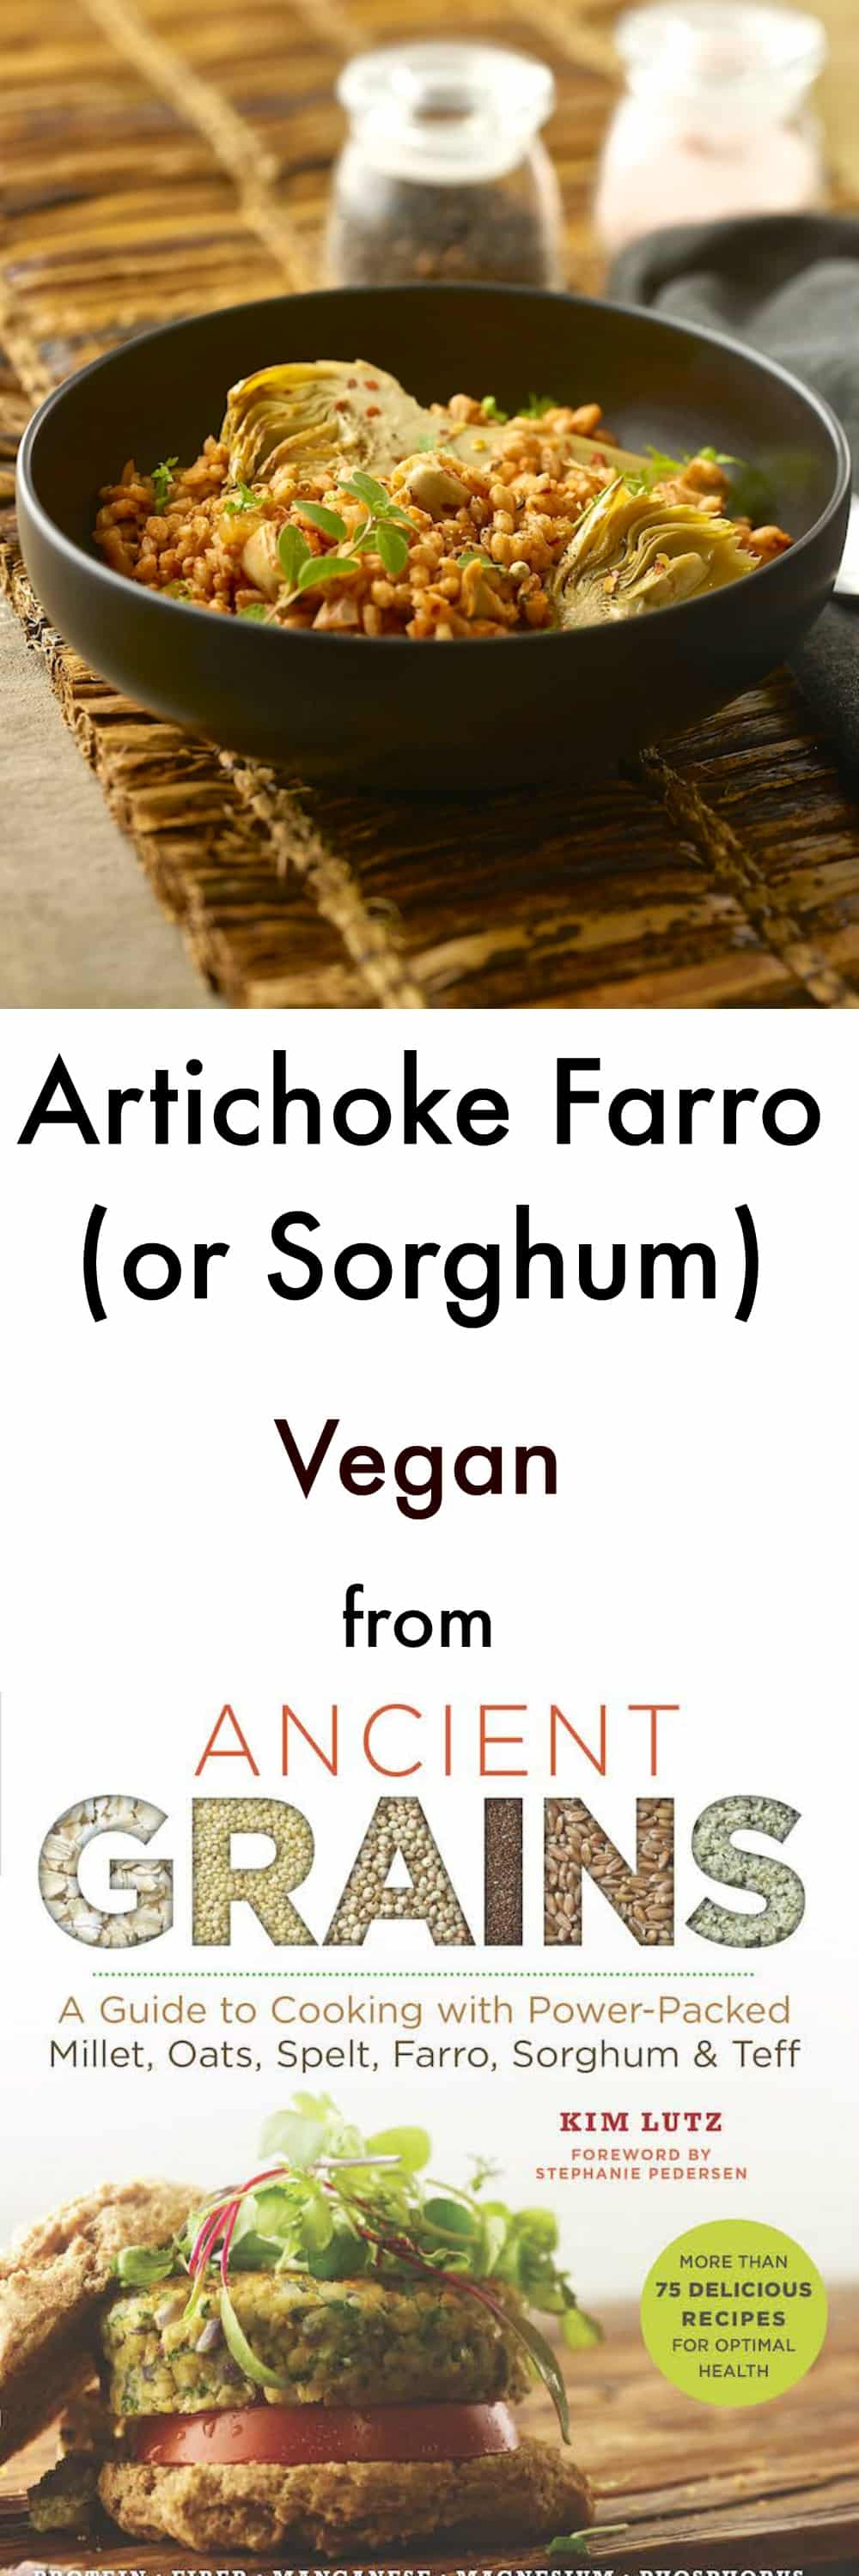 Artichokes & farro come together beautifully in this super speedy, very nutritious, one pot Artichoke Farro recipe from Ancient Grains: A Guide to Cooking with Power-Packed Millet, Oats, Spelt, Farro, Sorghum & Teff by Kim Lutz.